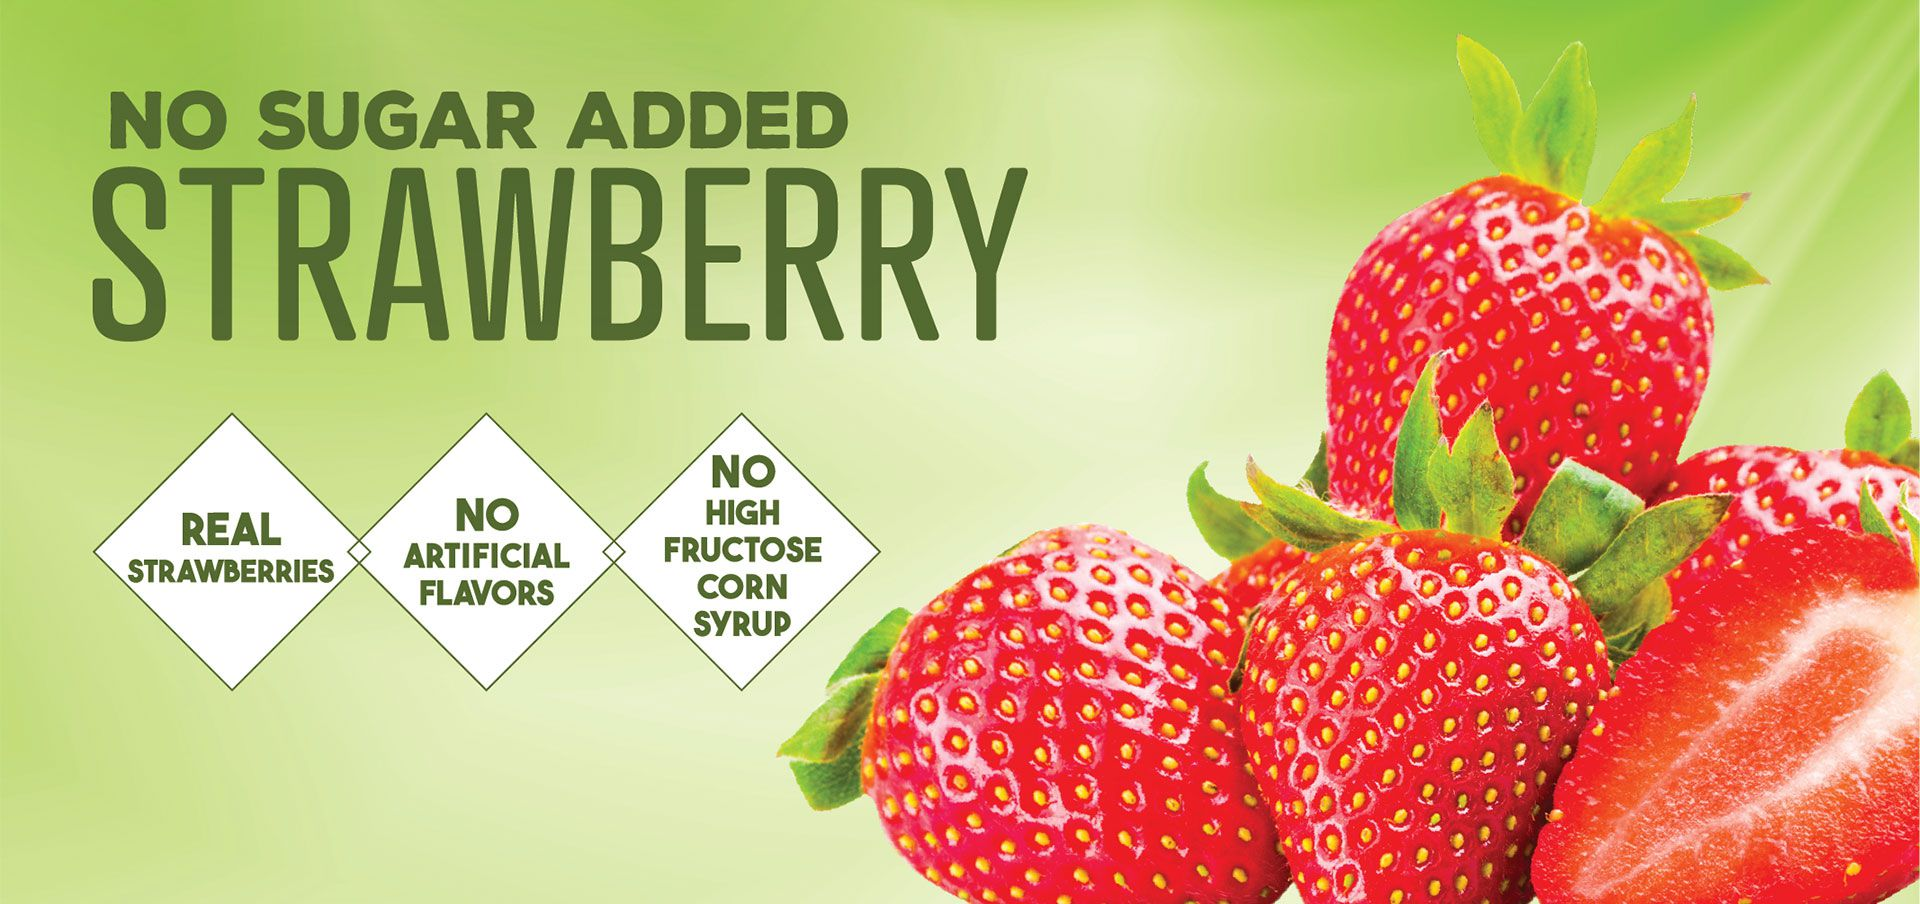 strawberry label image